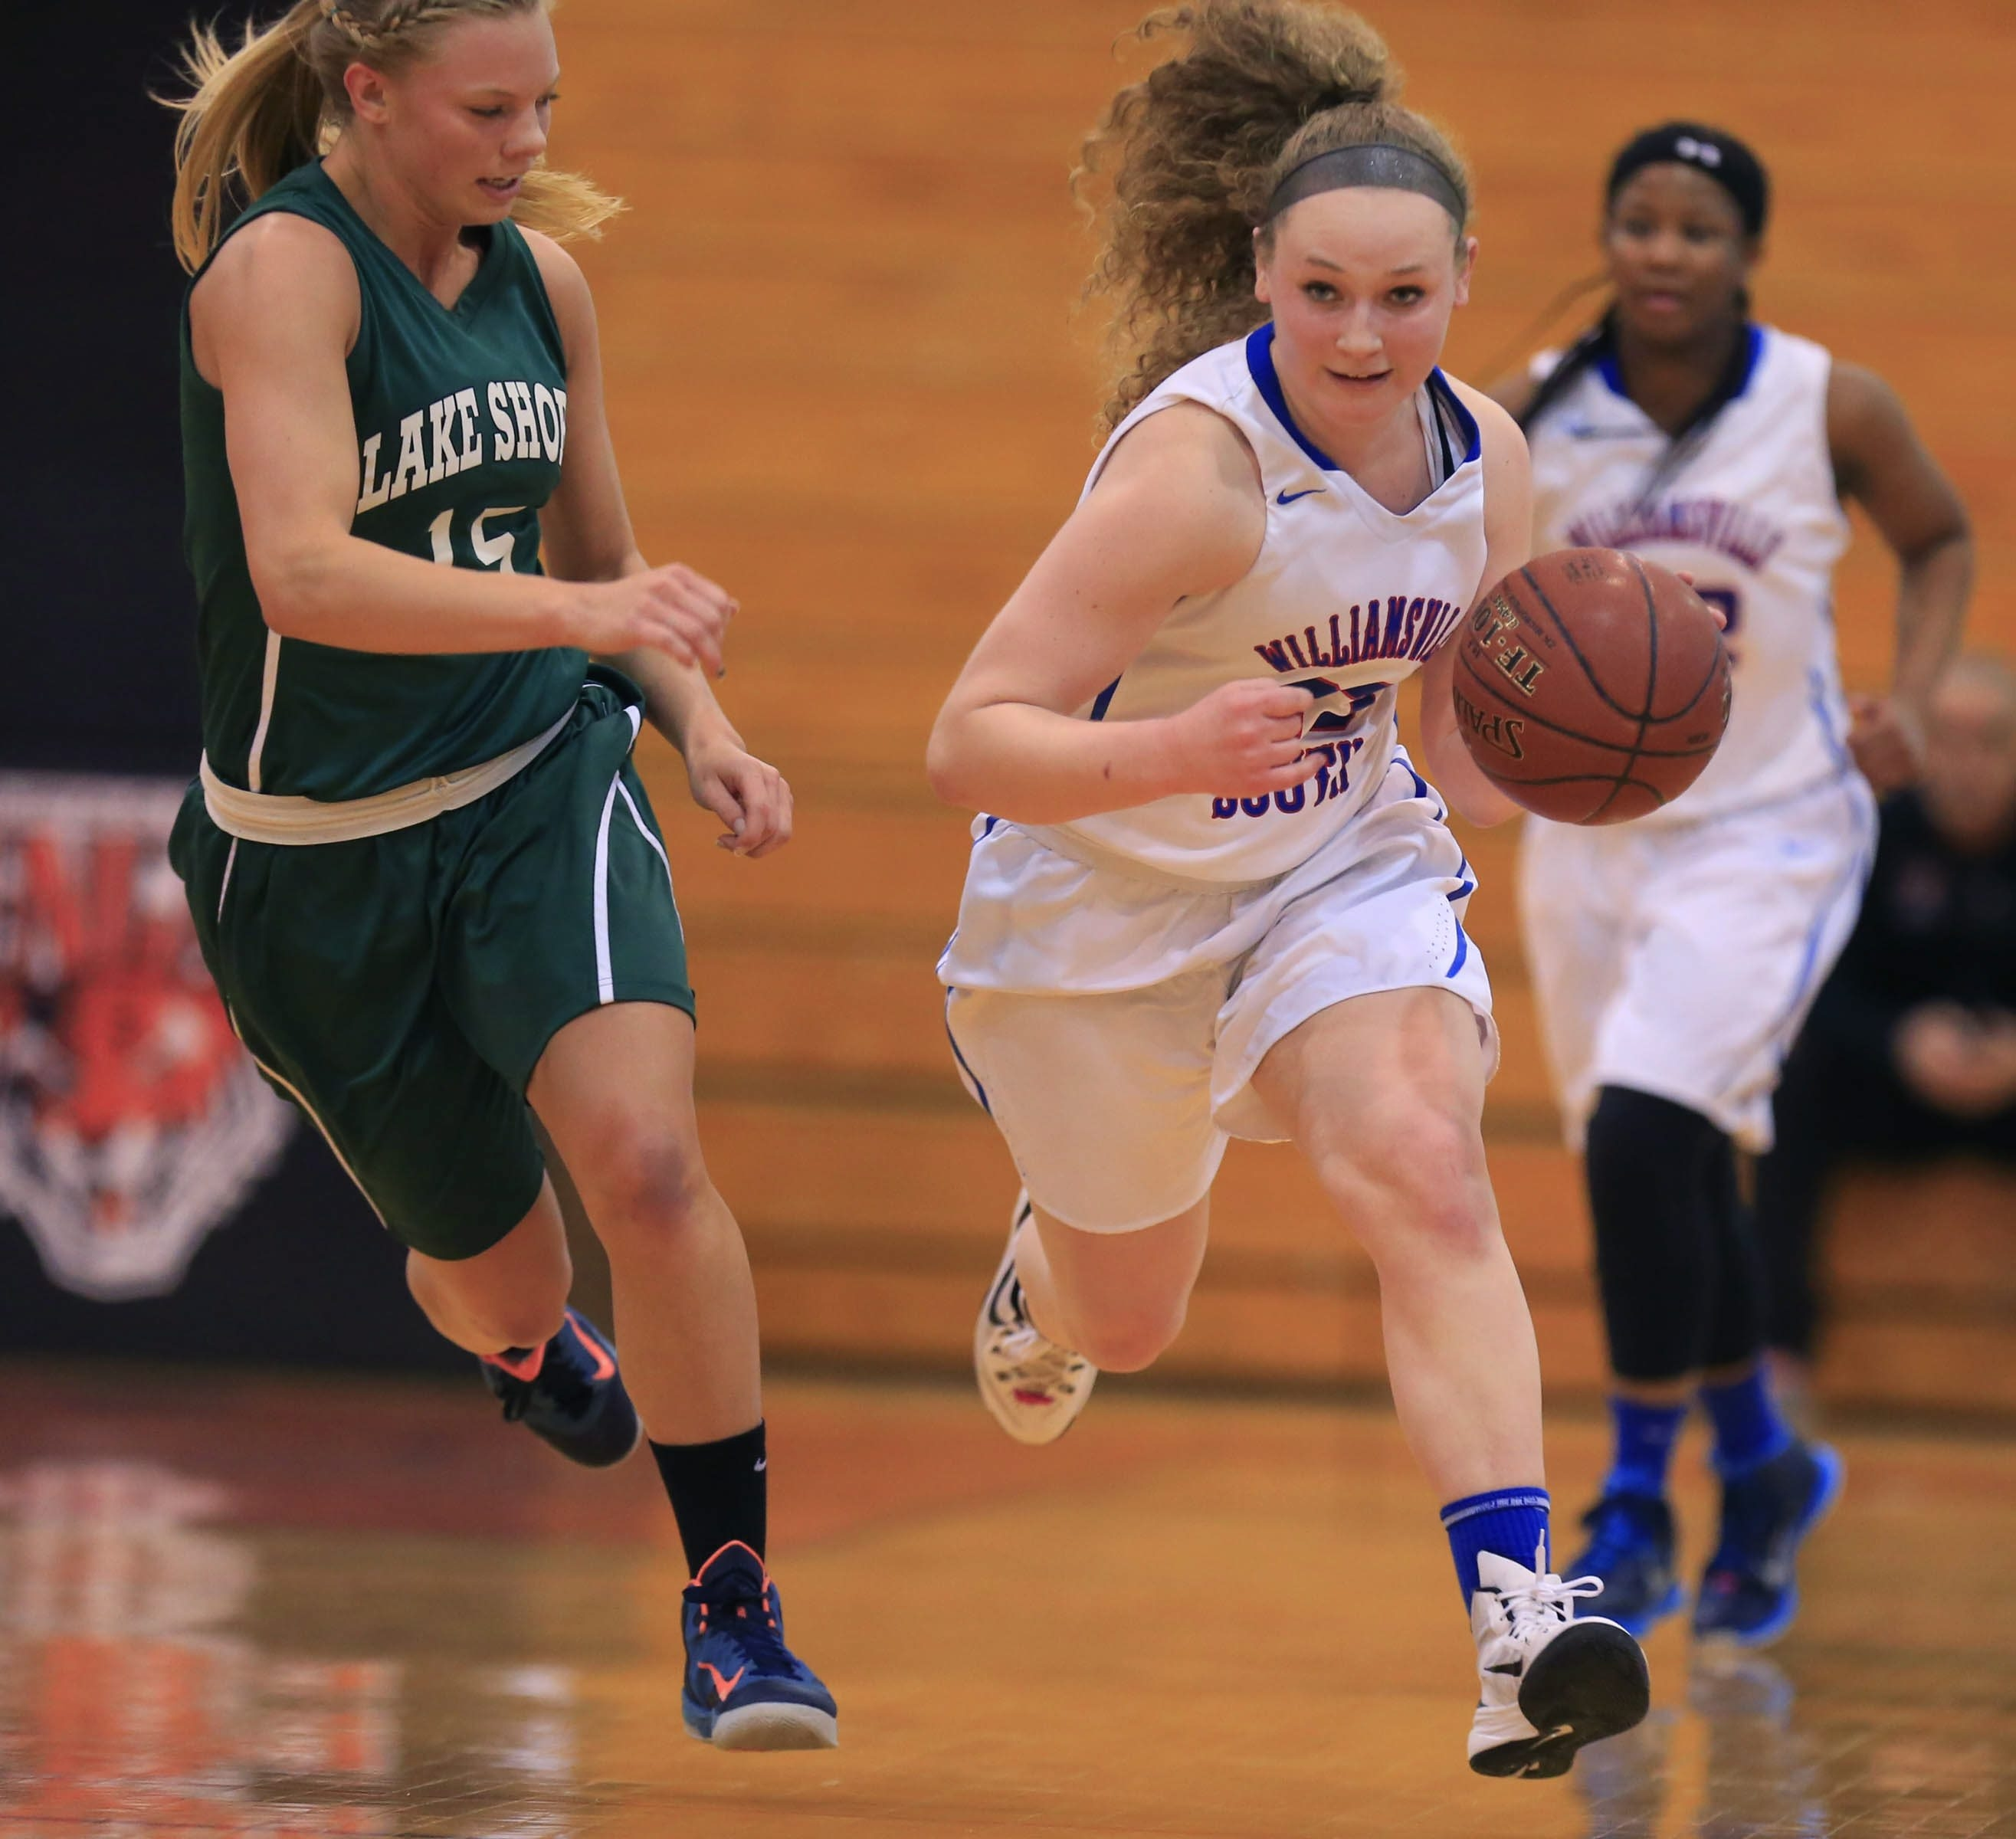 Williamsville South's Emily Smith and the rest of the Billies are aiming for a state title in Class A, which would be only the second one for a Section VI team.